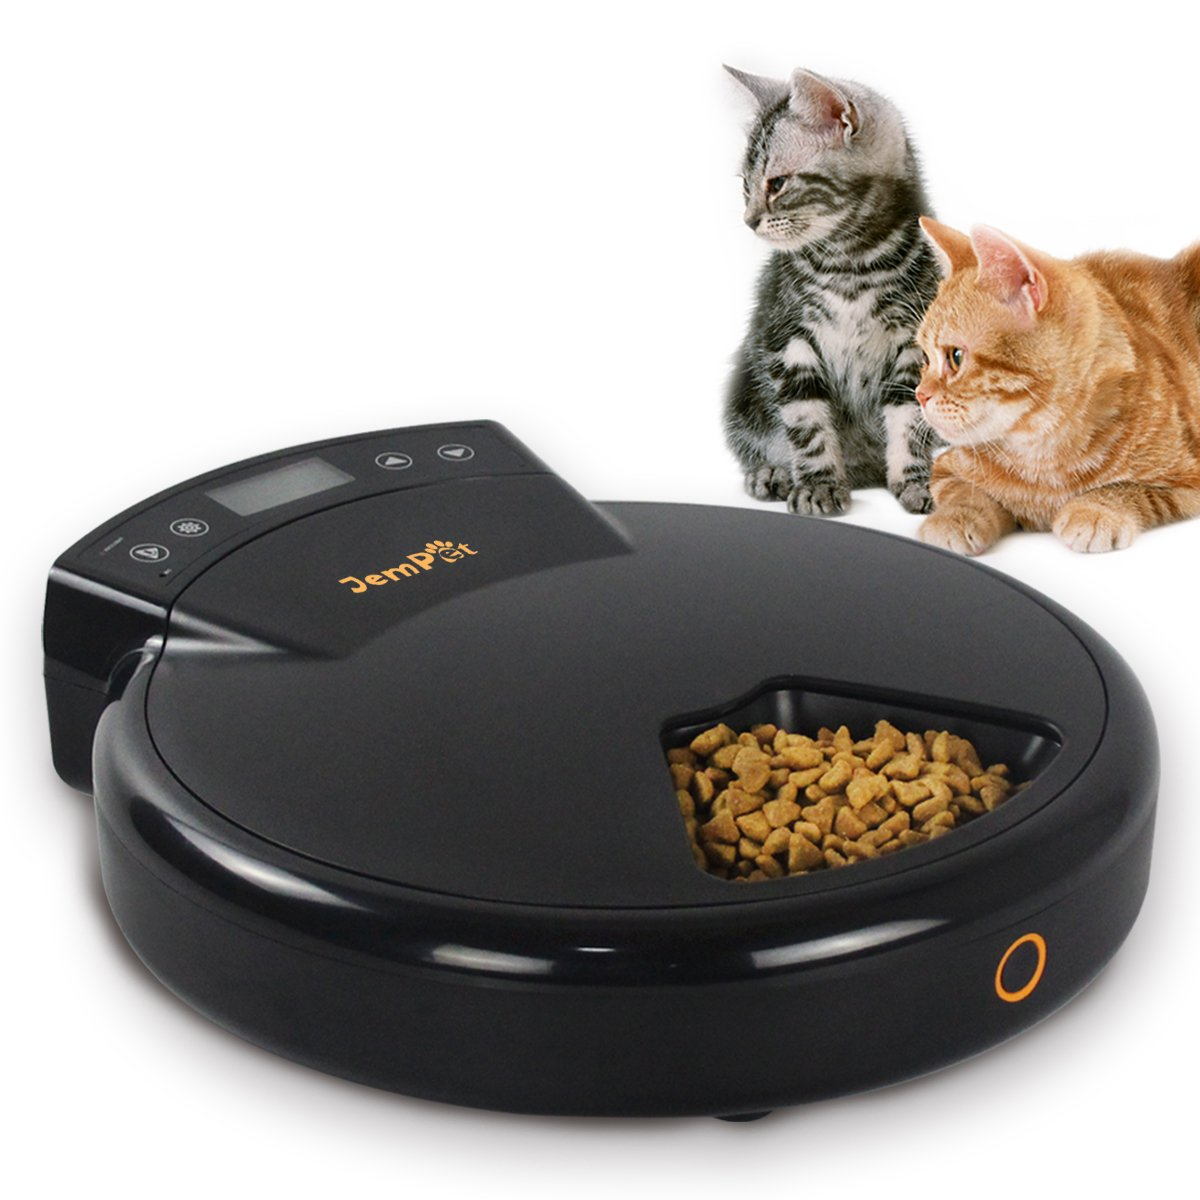 JEMPET Automatic Cat/Dog Feeder, 5 Meal Trays for Dry and Wet Food, Auto Pet Food Dispenser with Voice Recording and Timer